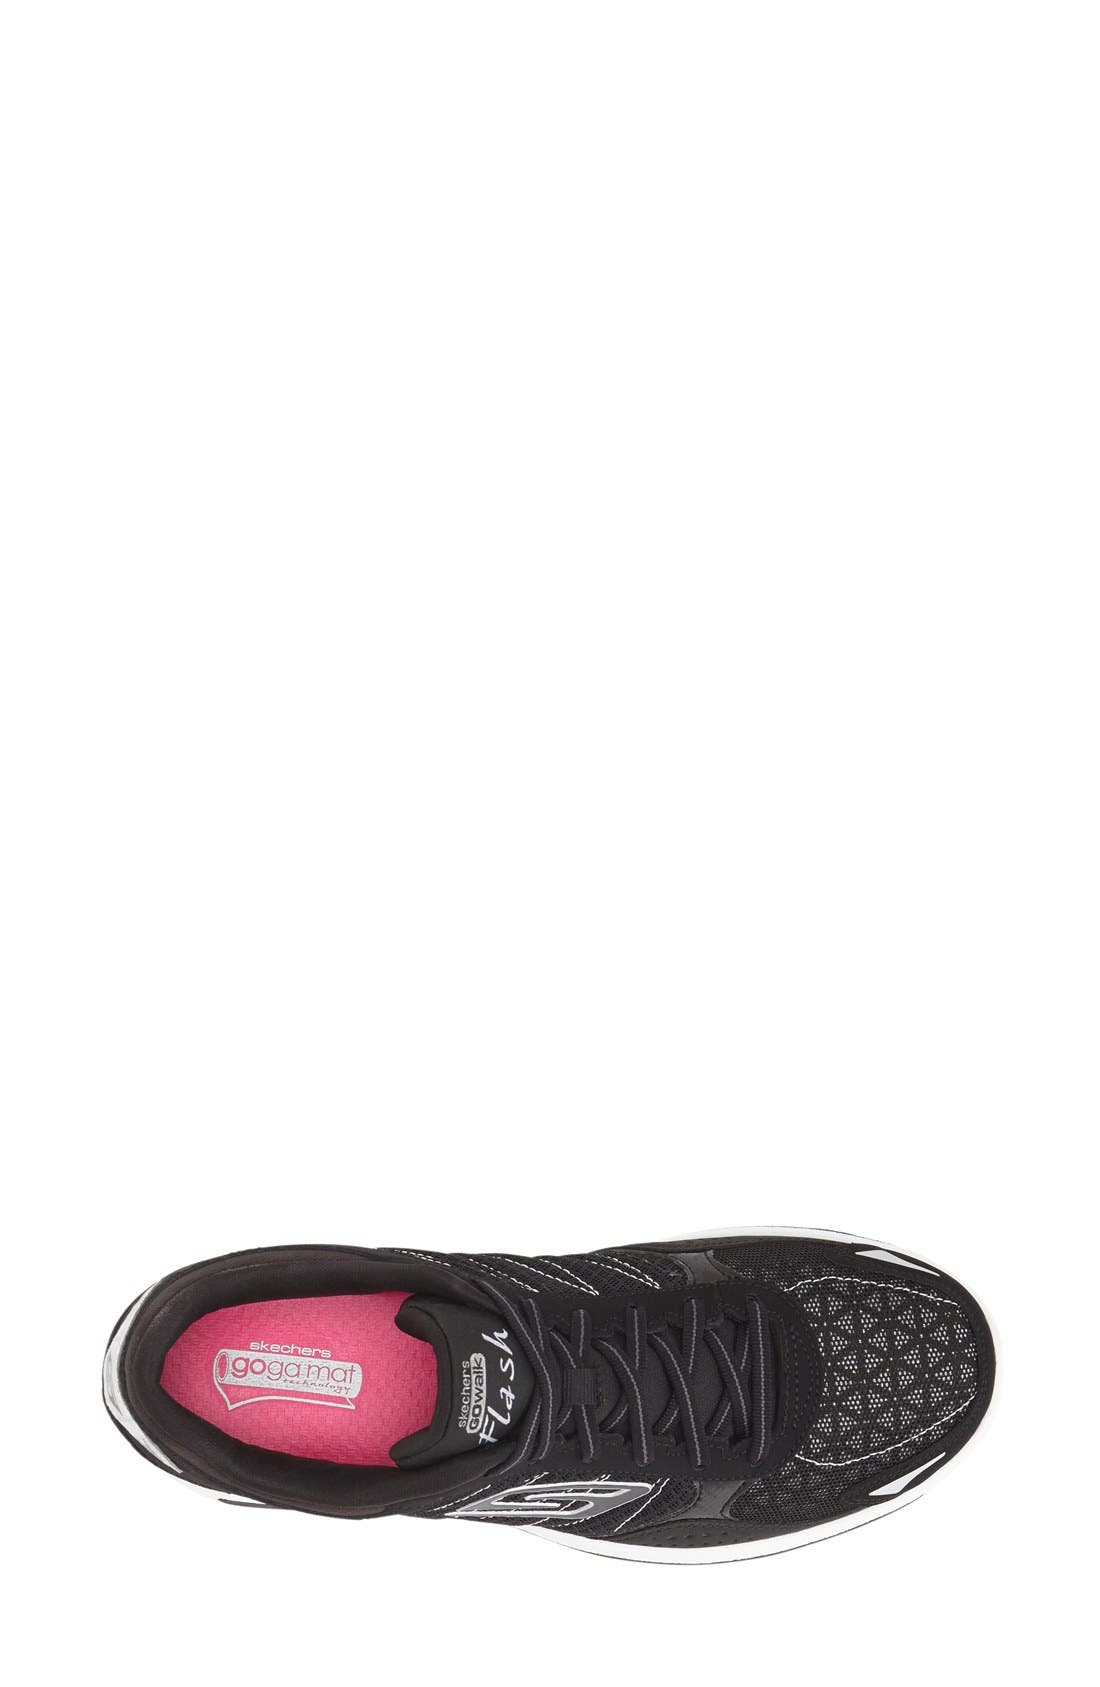 Alternate Image 3  - SKECHERS 'GOwalk 2 - Flash' Sneaker (Women)